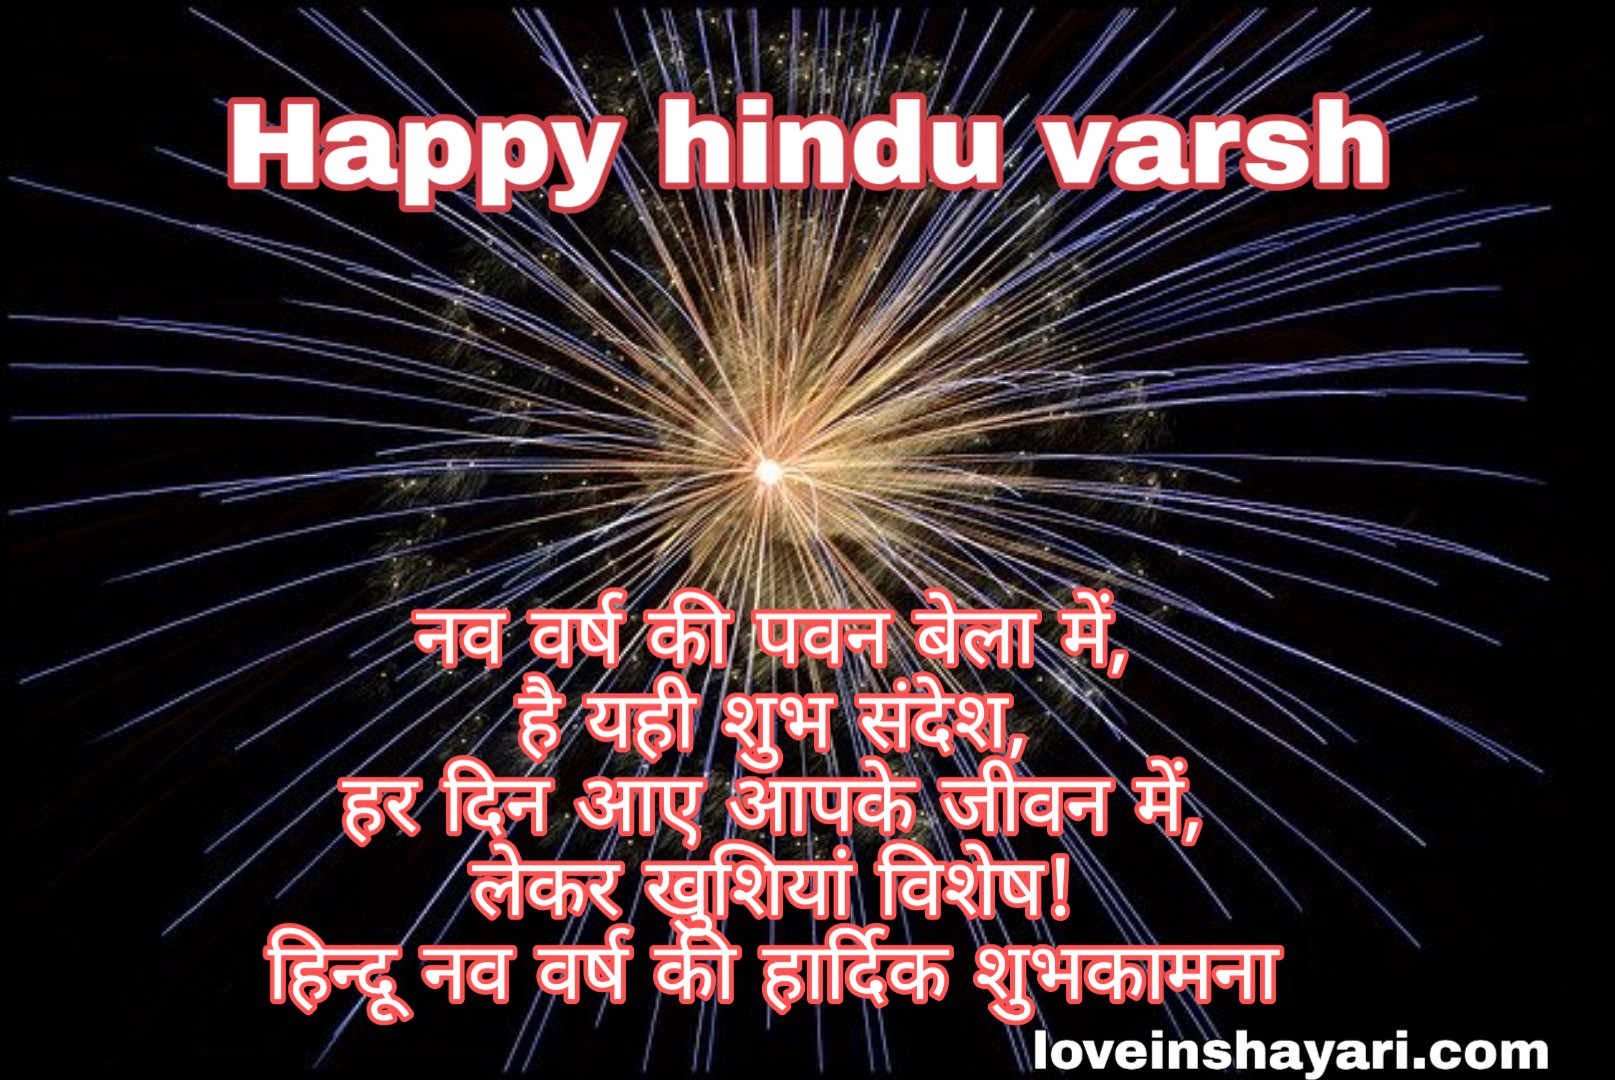 Photo of Hindu nav varsh wishes shayari image quotes 2020